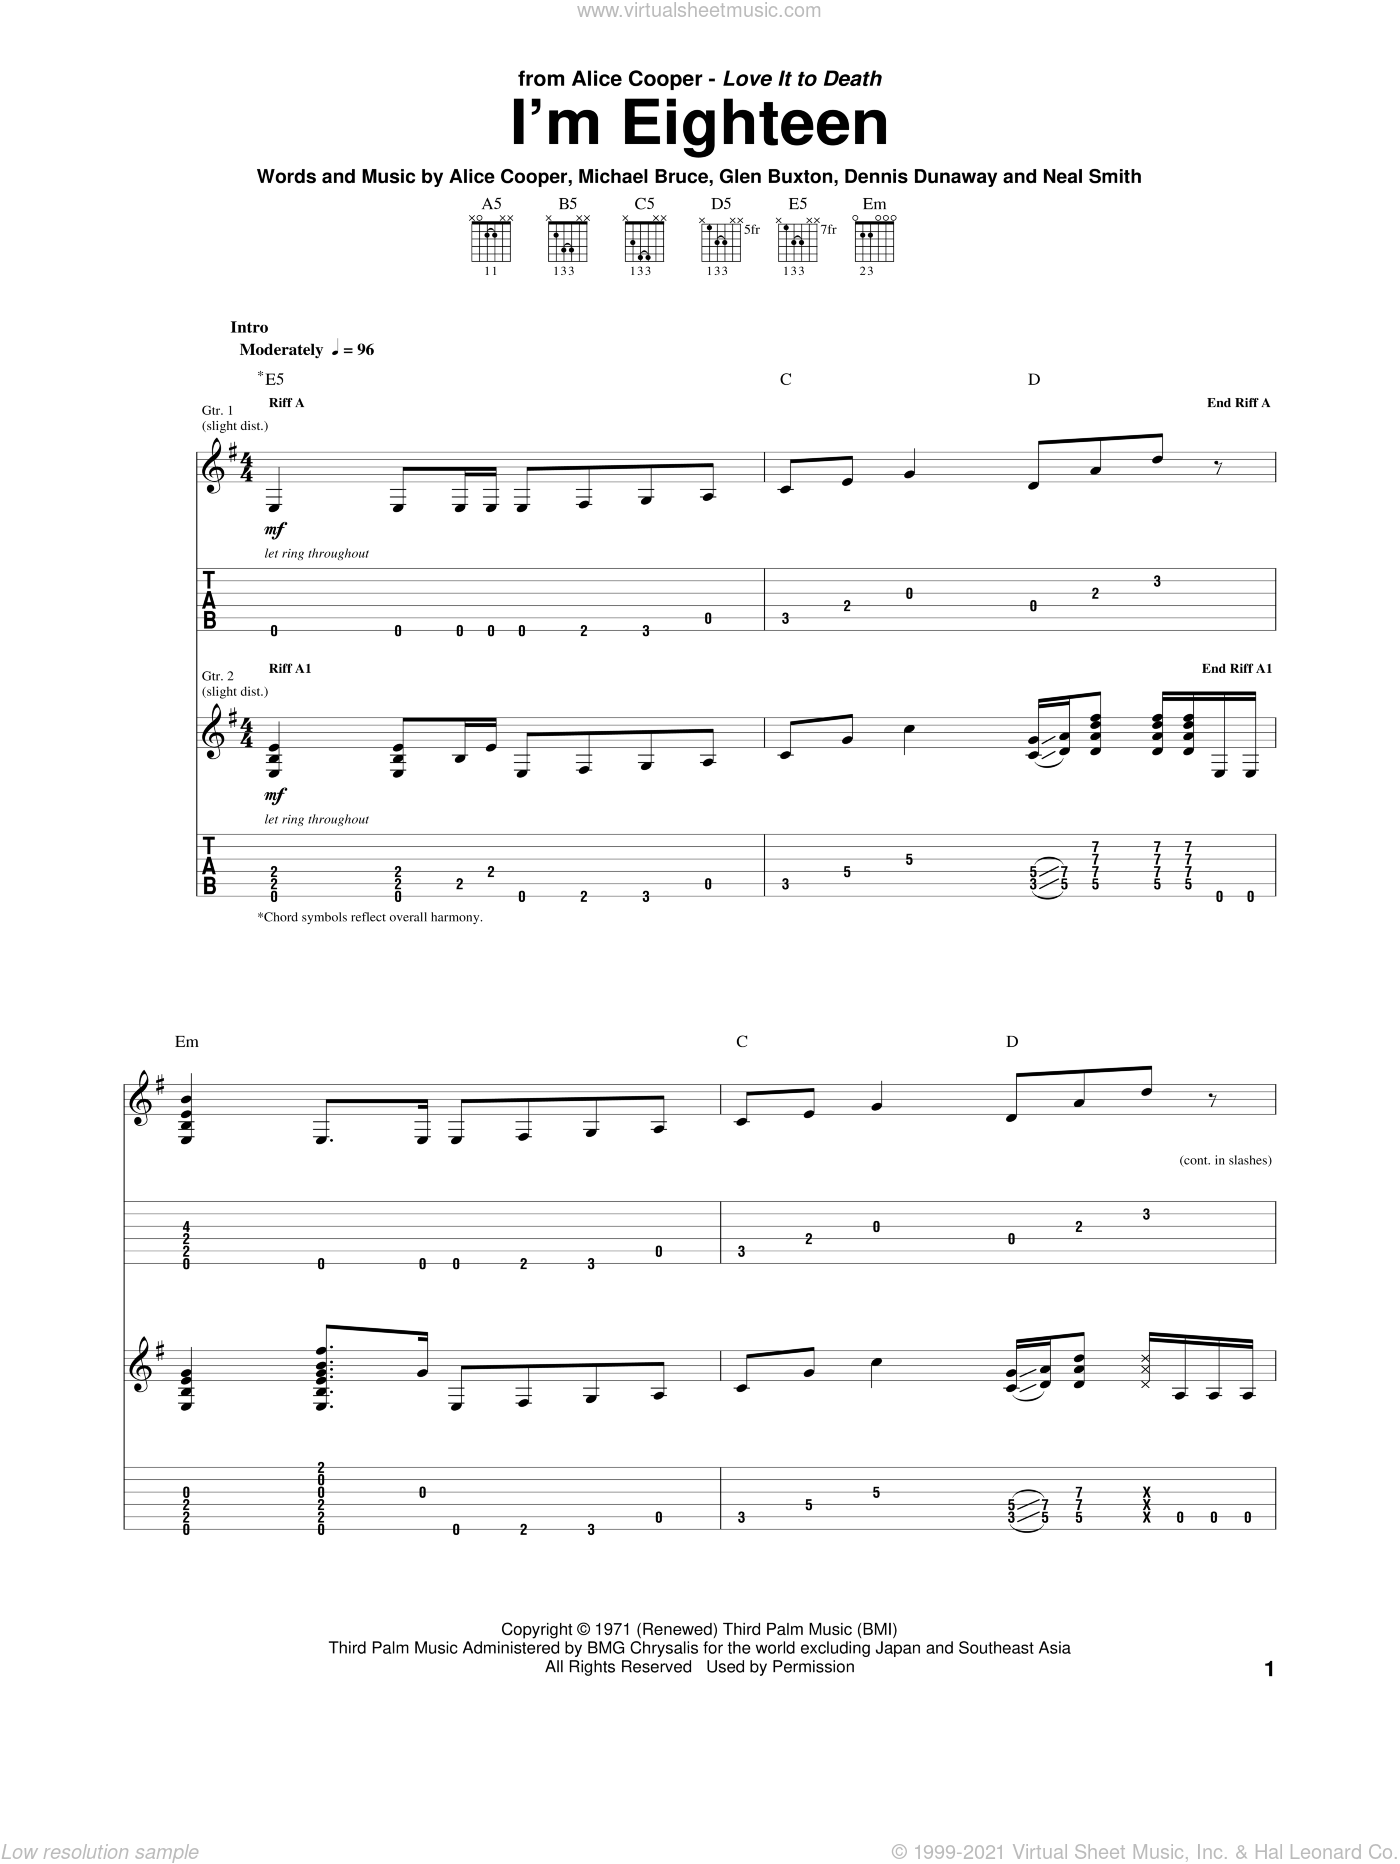 I'm Eighteen sheet music for guitar (tablature) by Alice Cooper, Dennis Dunaway, Glen Buxton, Michael Bruce and Neal Smith, intermediate skill level